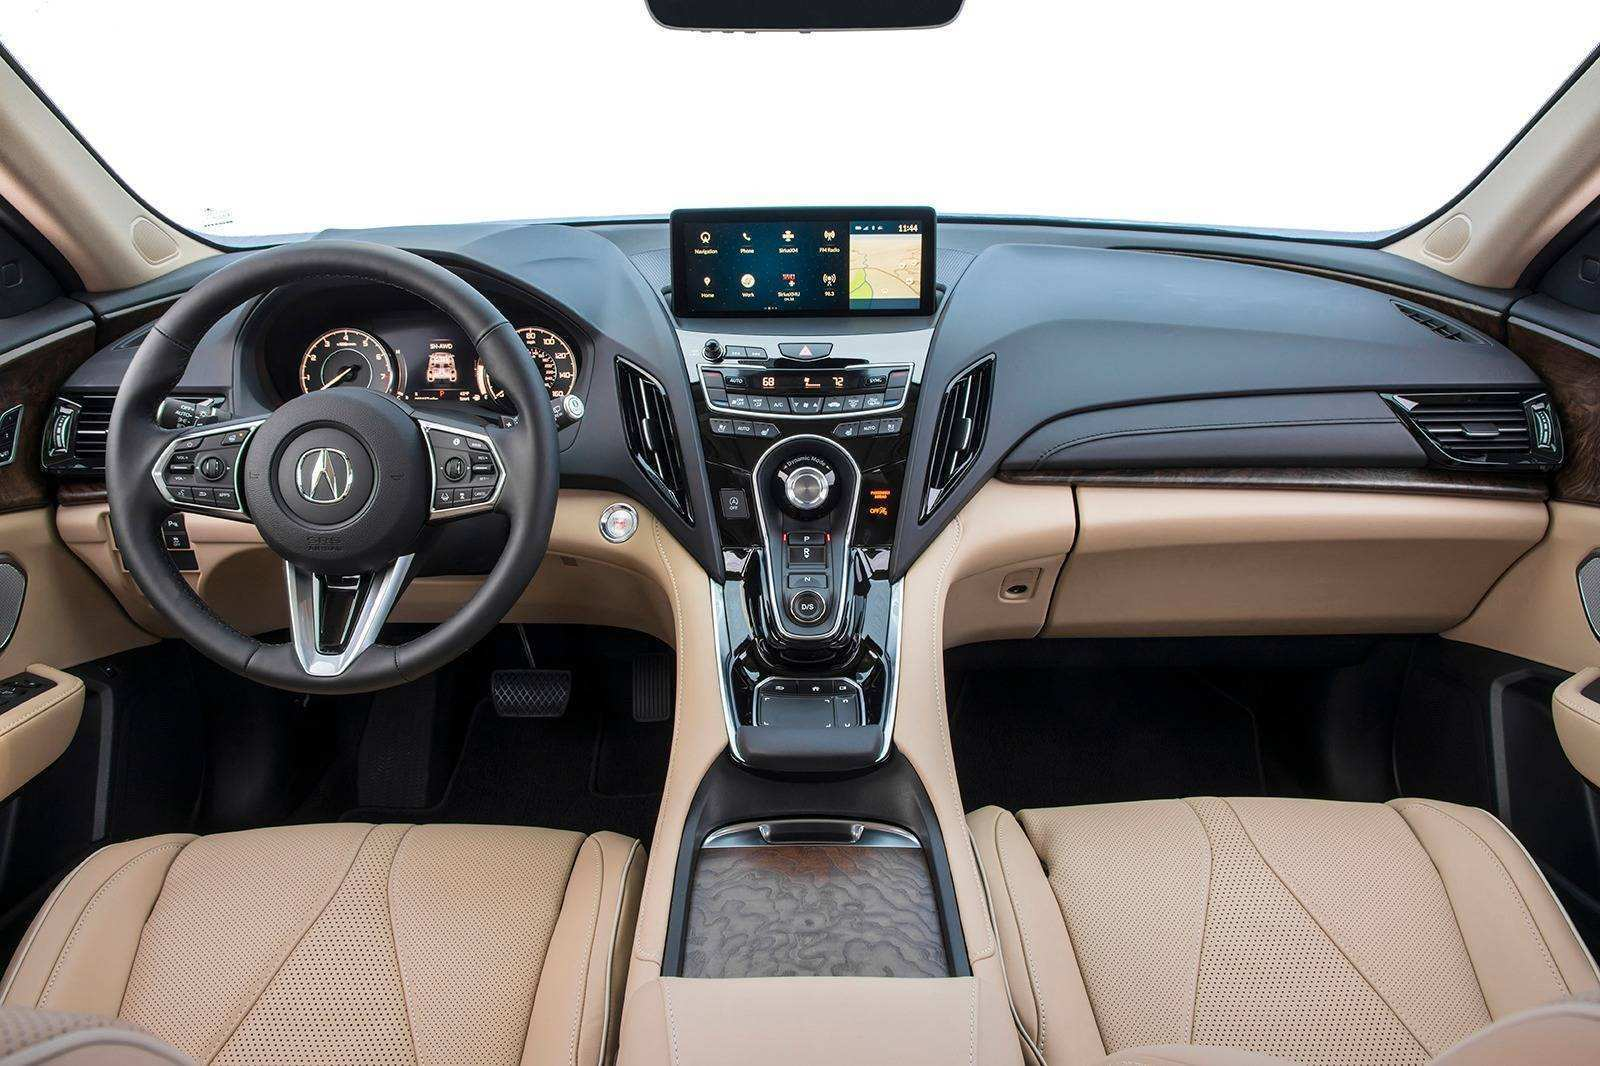 77 All New New 2019 Acura V6 Turbo First Drive Price Performance And Review Spesification with New 2019 Acura V6 Turbo First Drive Price Performance And Review